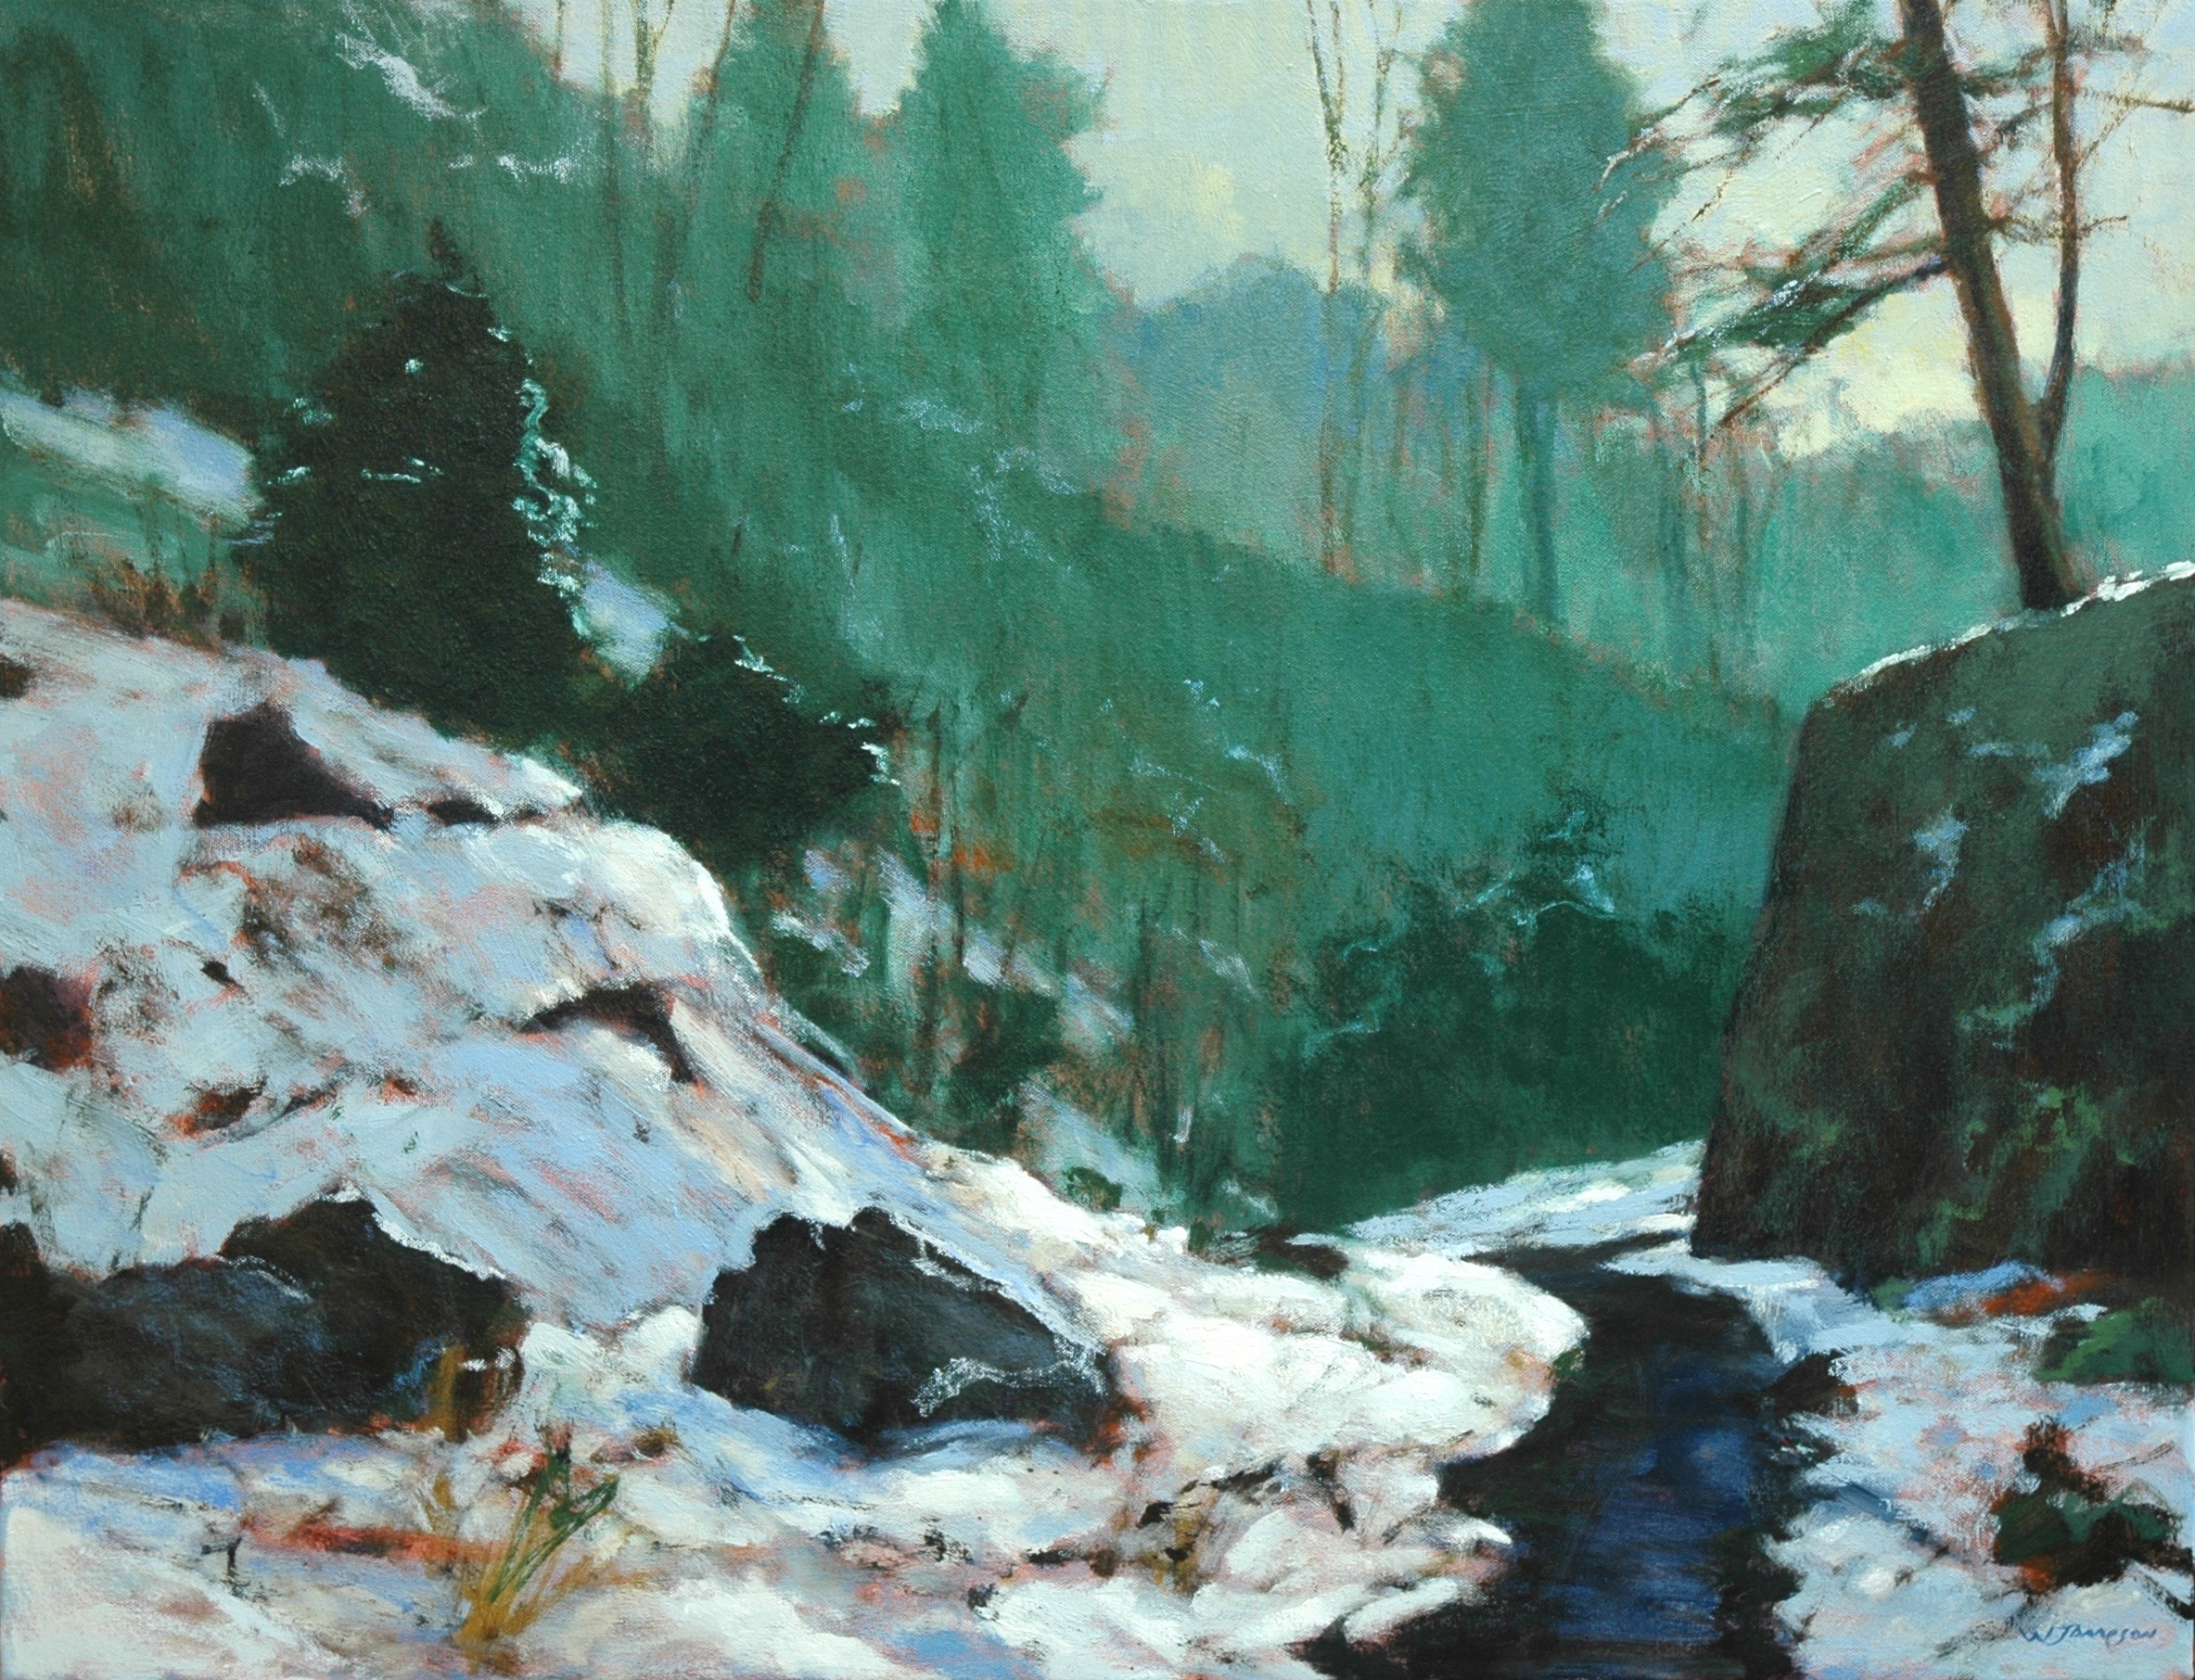 Gap Creek Winter 34x26 $5,500.jpg